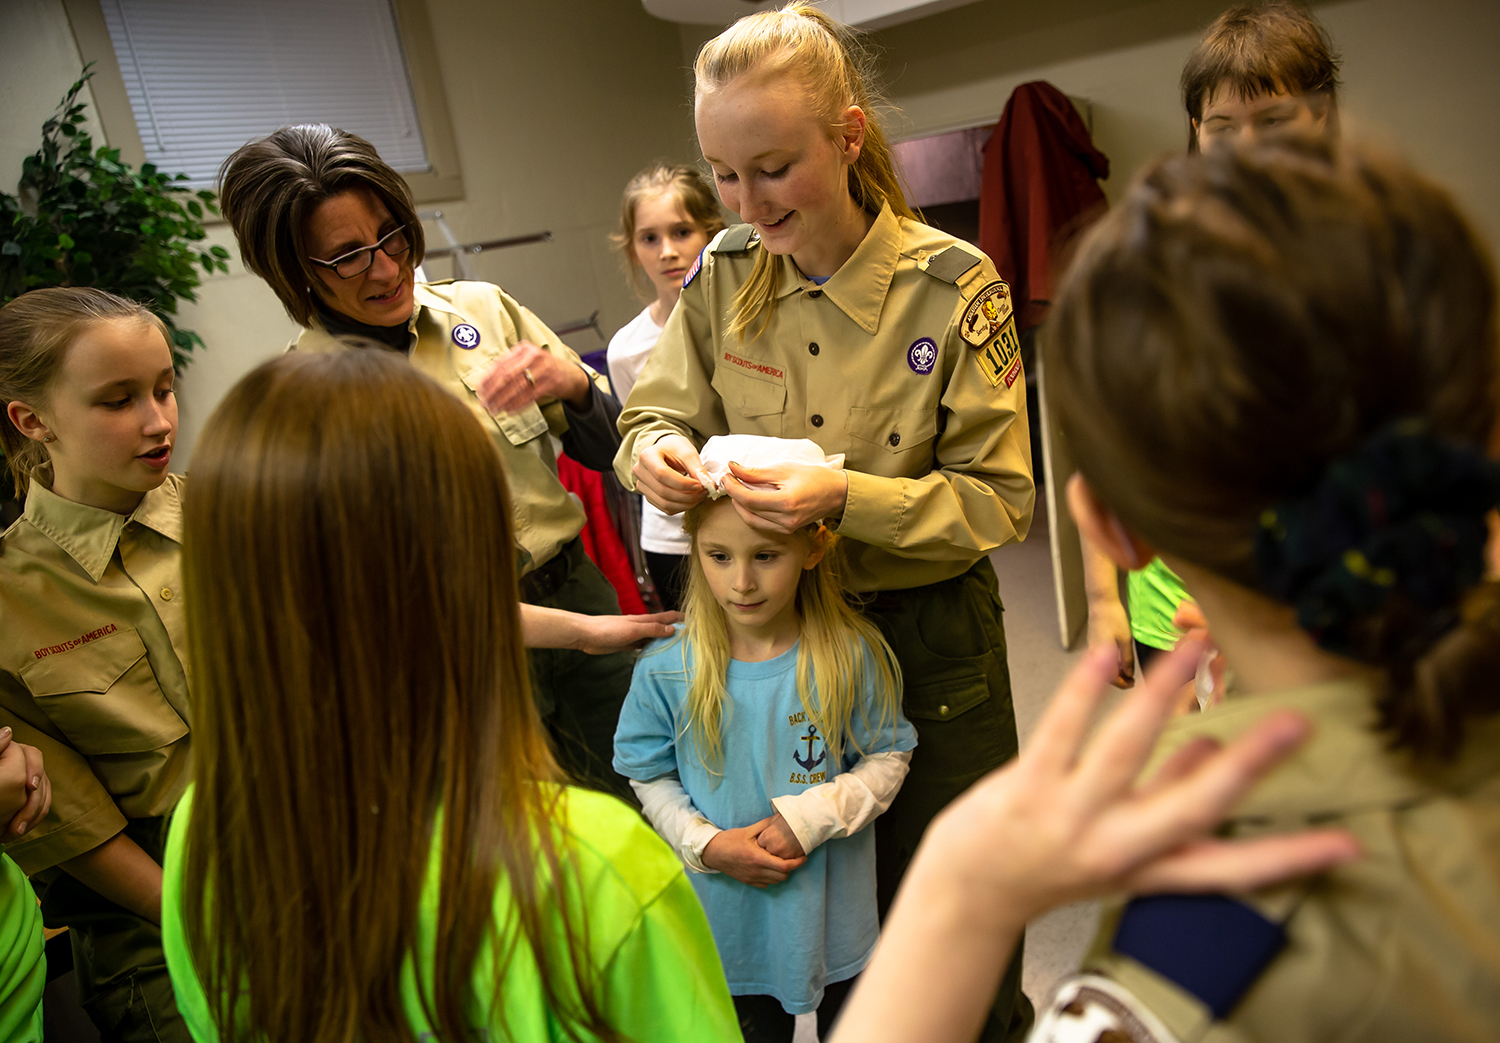 Scout Arianna Antonacci, 13, uses Josie Kren, 6, as a test subject to learn how to make a bandage out of a piece of cloth with the assistance of Scoutmaster Jennifer Wente, left, as the girls prepare for the First Aid Meet during a meeting of Scouts BSA Troop 1031 at the Blessed Sacrament Church, Monday, Feb. 11, 2019, in Springfield, Ill. Troop 1031 is among the first three all-female troops in the Springfield area to receive their charters Feb. 1 through Boy Scouts of America. [Justin L. Fowler/The State Journal-Register]